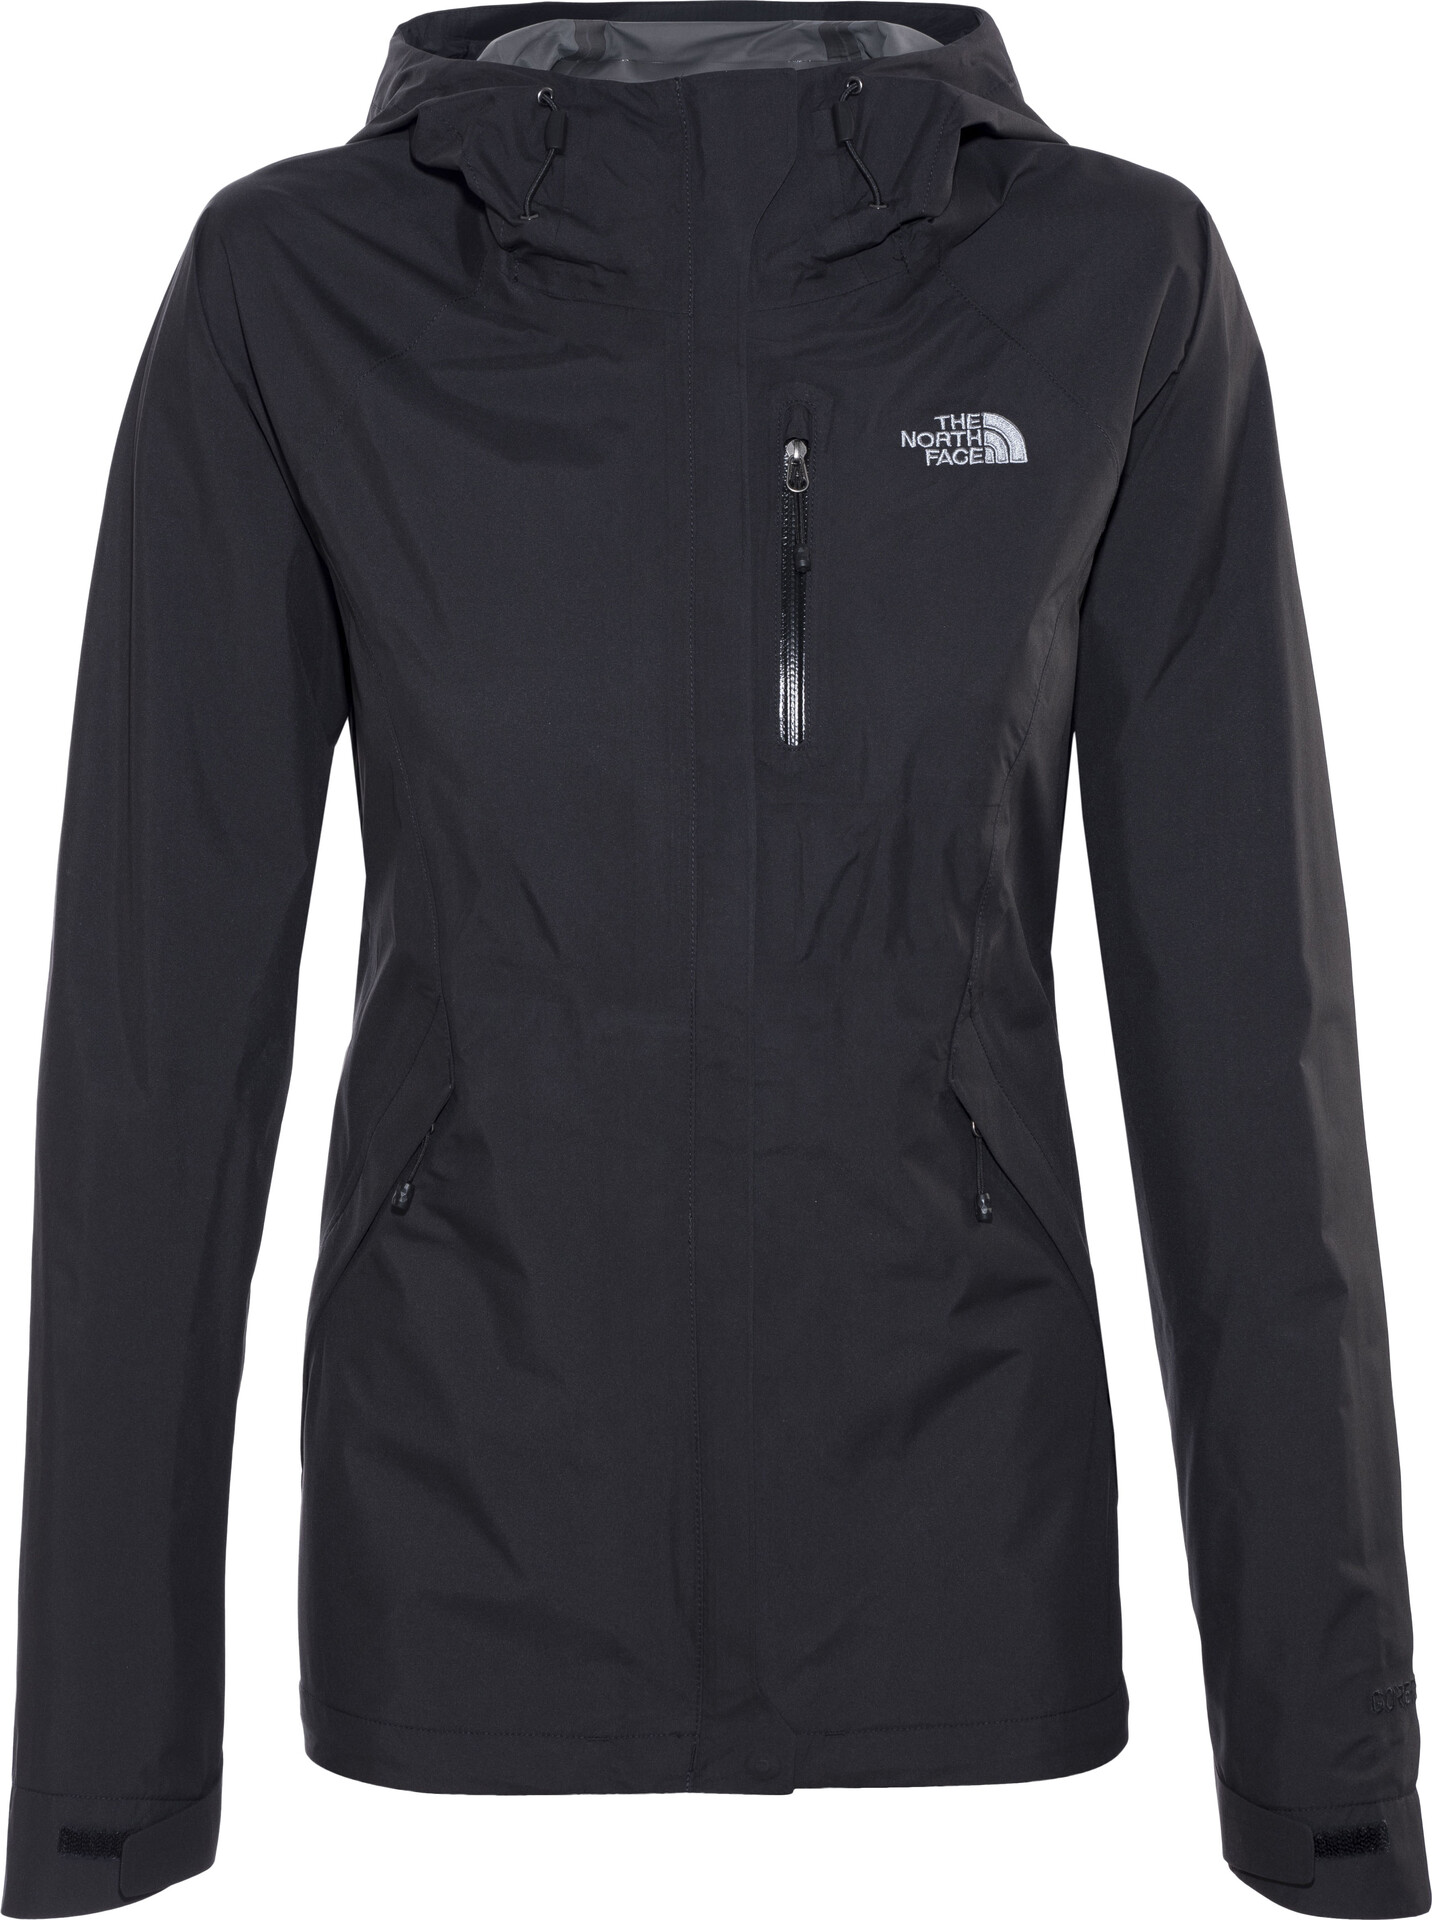 chubasquero mujer the north face